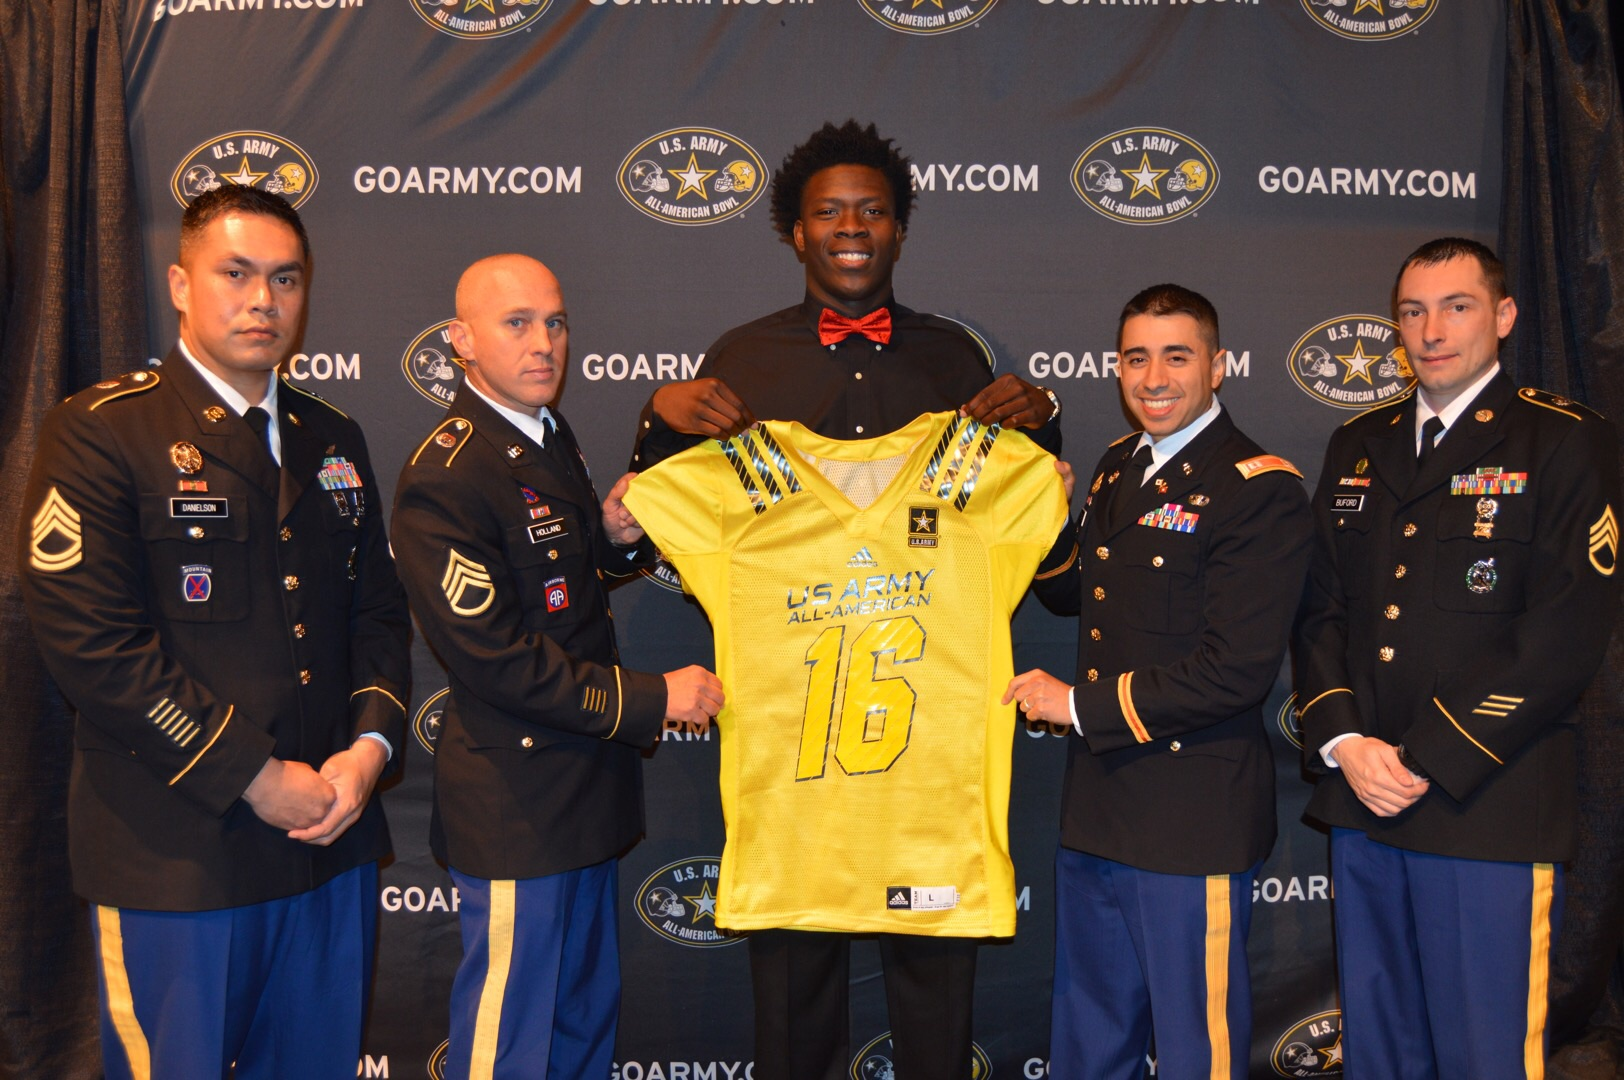 Sewo Olonilua receives his jersey from (from left) Sergeant First Class Victor Danielson, Staff Sergeant Christopher Holland, Captain Jose Real and Sergeant First Class Charles Buford. (Photo: U.S. Army All-American Bowl)